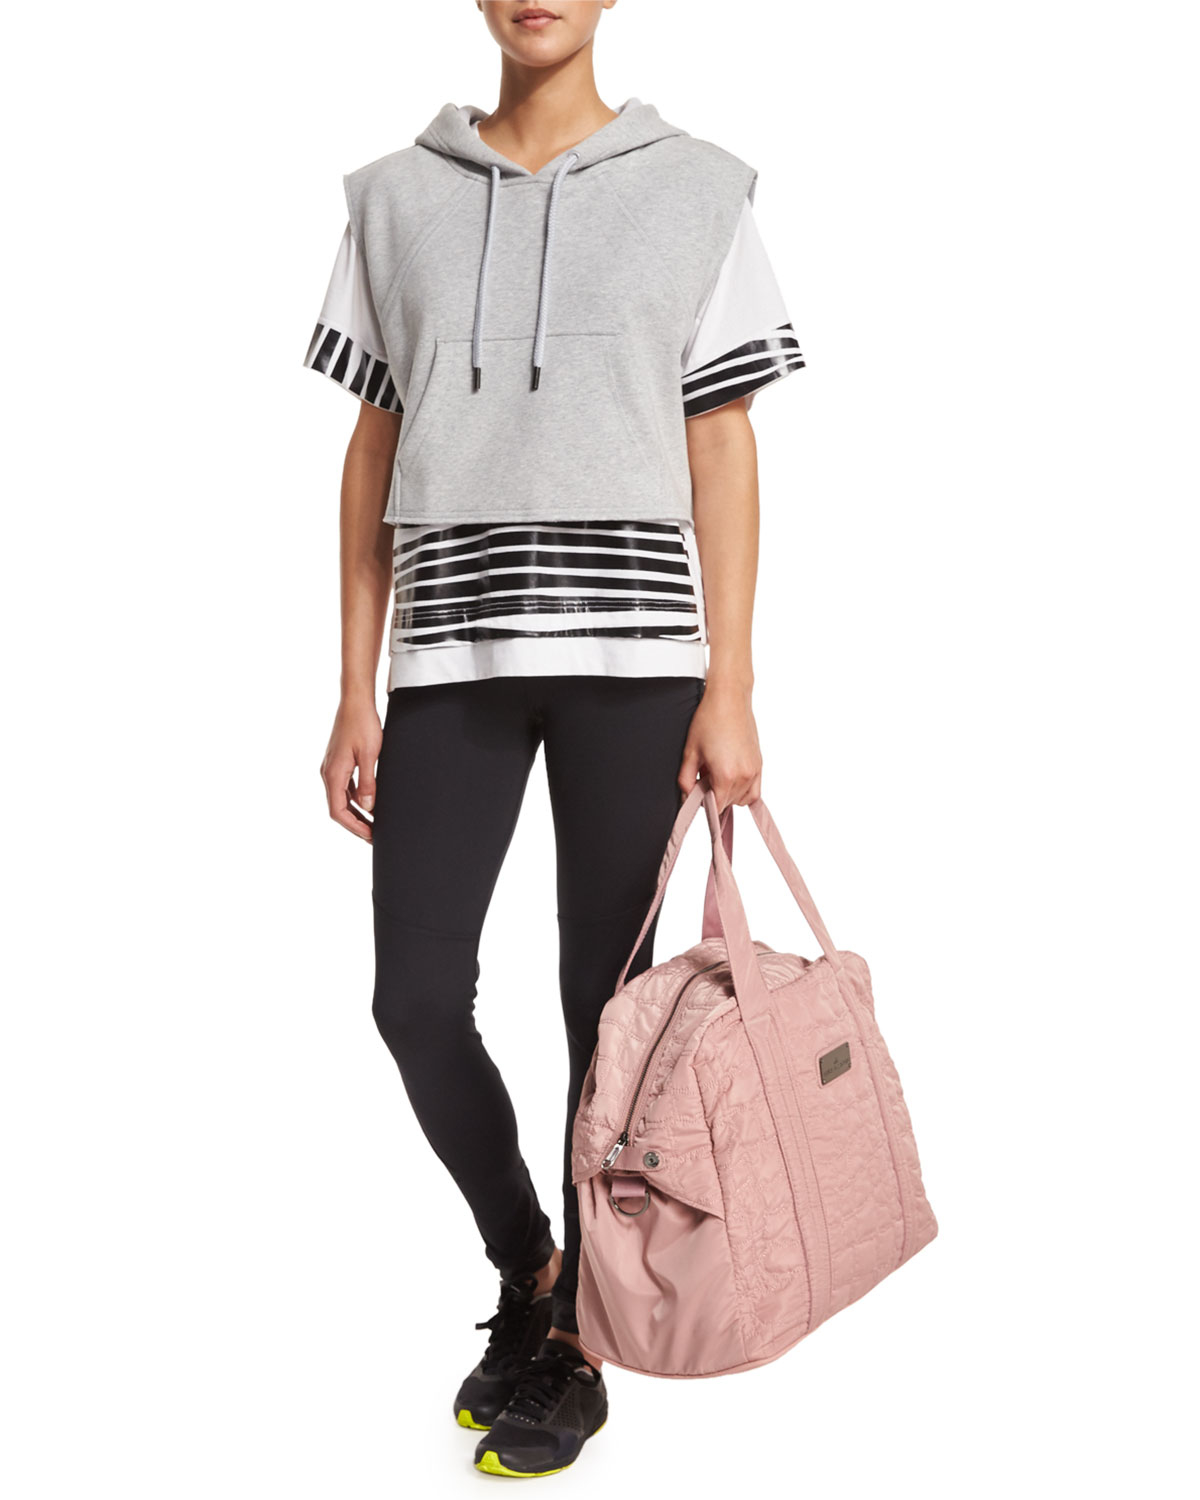 3be24aab7c Lyst - adidas By Stella McCartney Quilted Tech-fabric Essential Gym ...